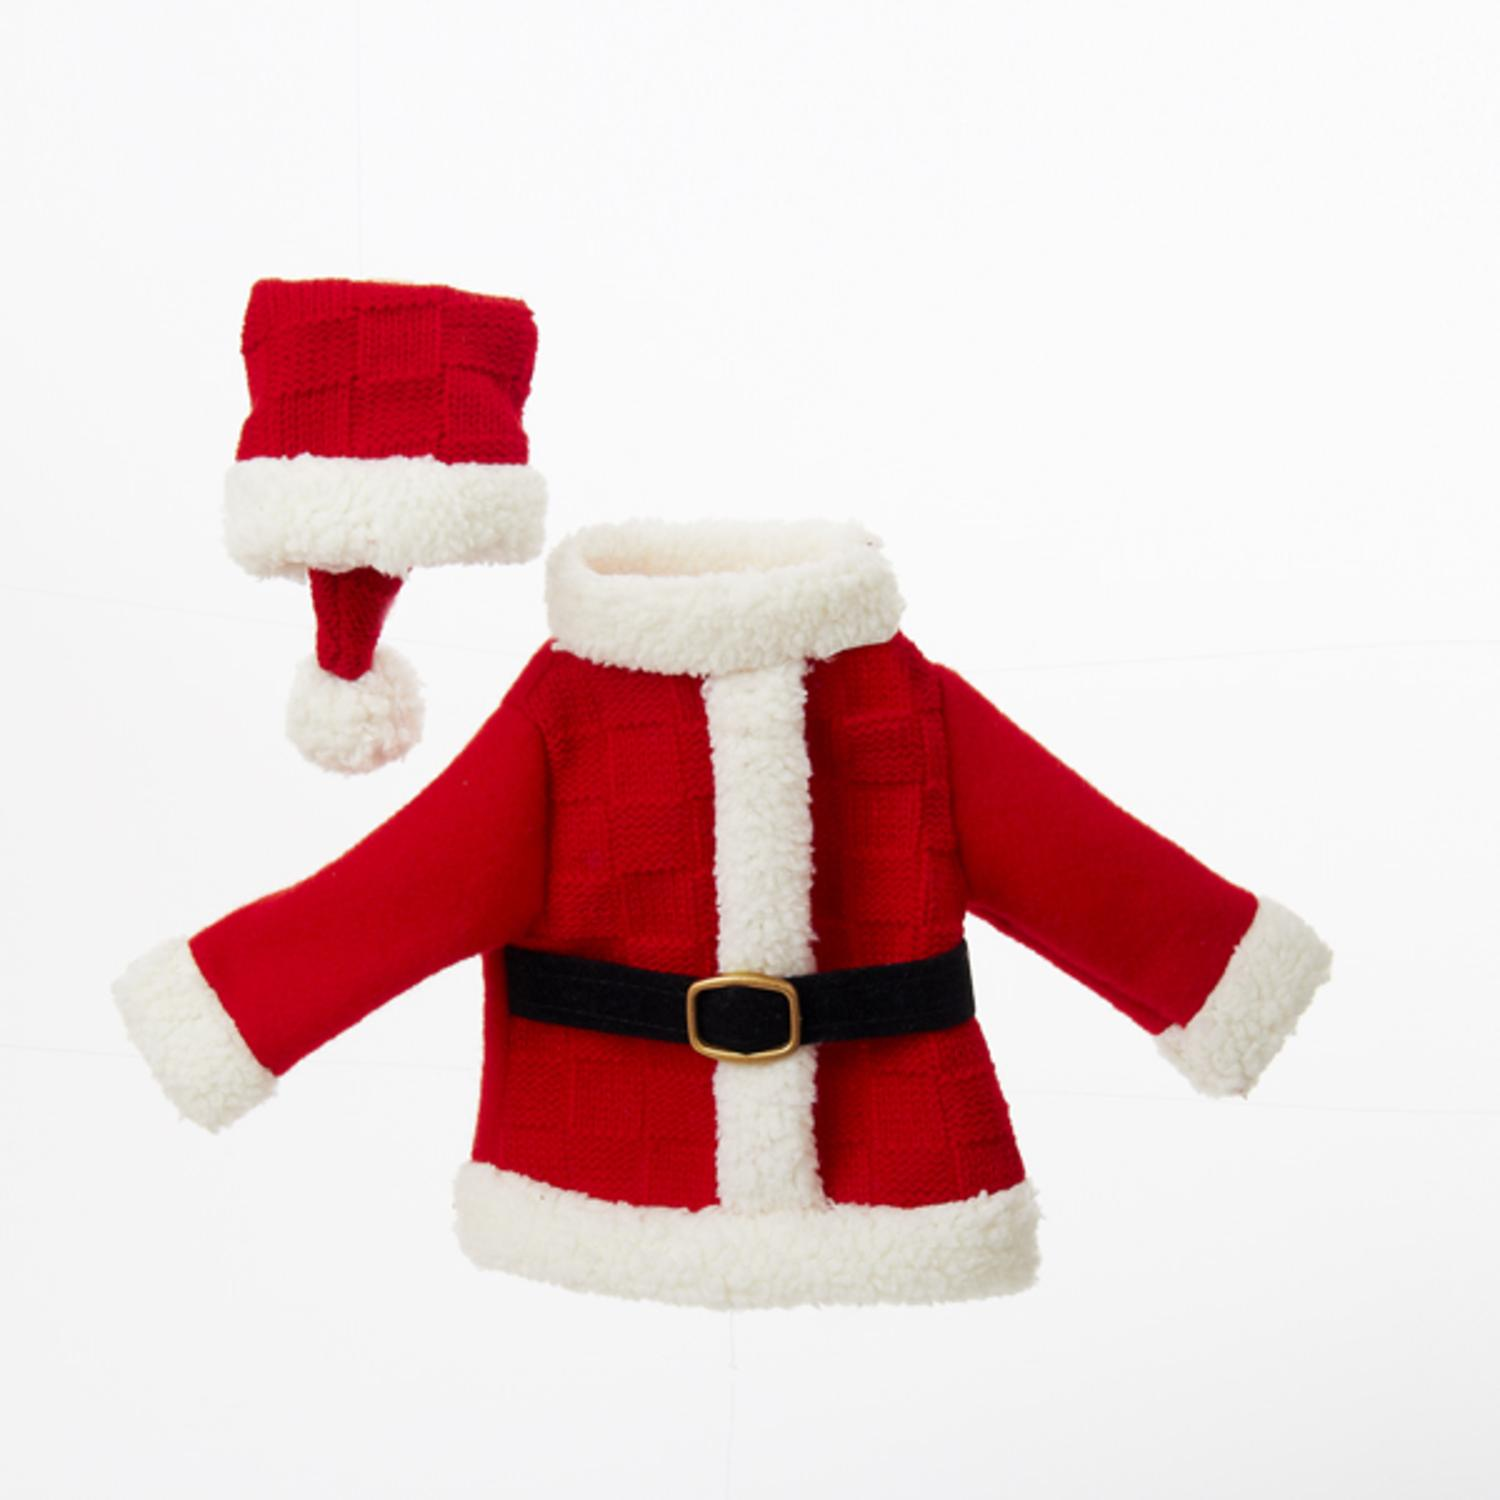 "11"" Festive Red and White Santa's Coat and Hat Decorative Knit Wine Bottle Cover by Kurt Adler"